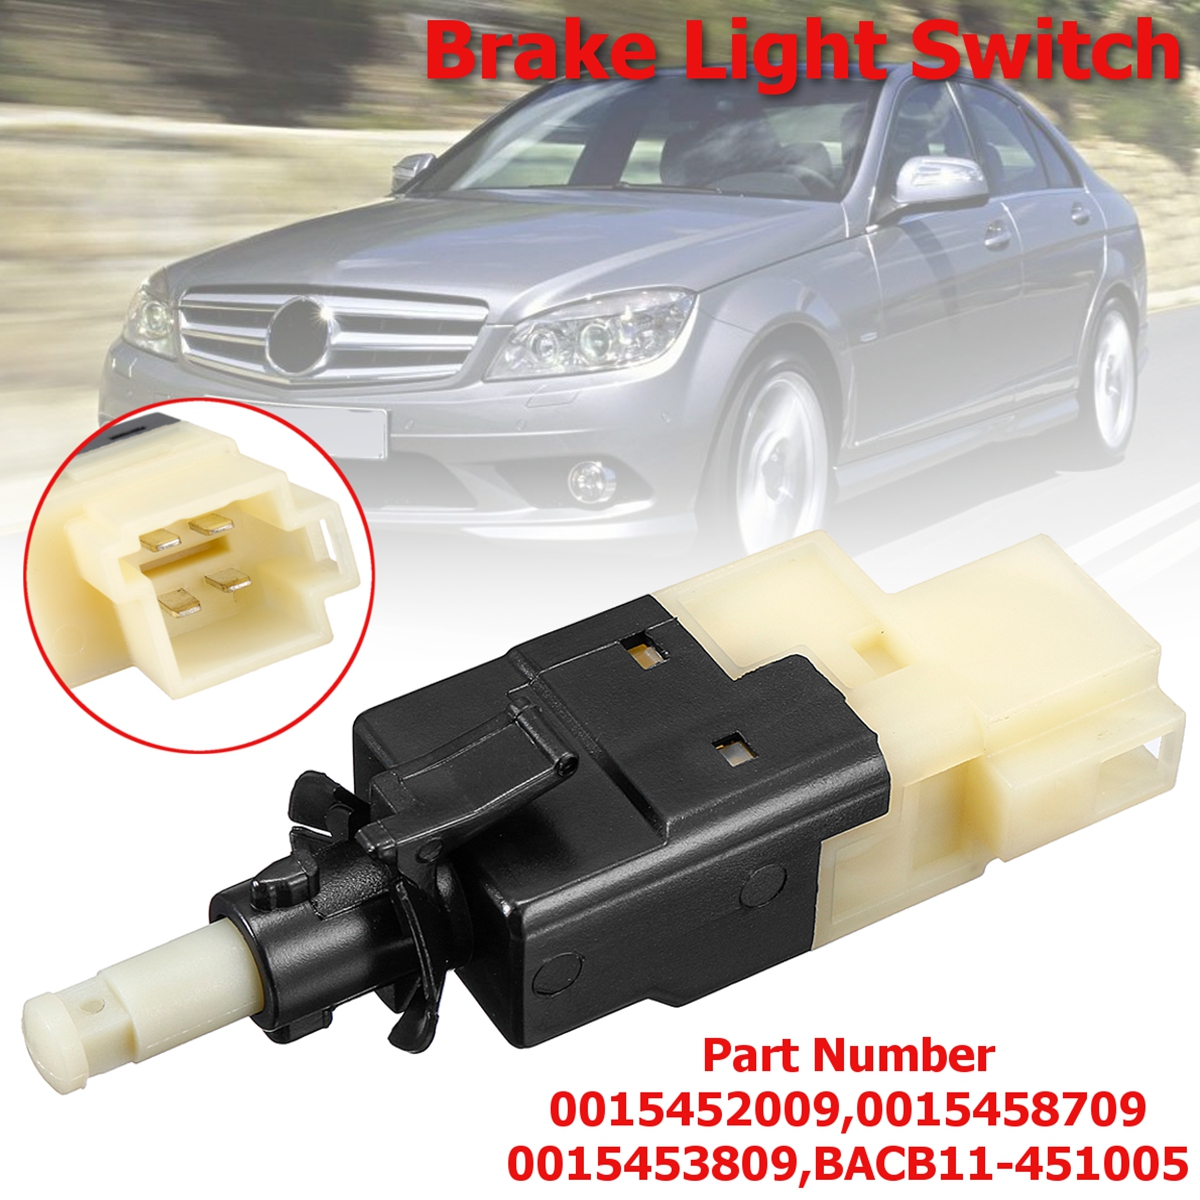 detail feedback questions about a0015453809 car style brake light switch for mercedes benz c230 c240 w203 w163 ml320 ml350 2001 2002 2003 2004 2005 2006  [ 1200 x 1200 Pixel ]